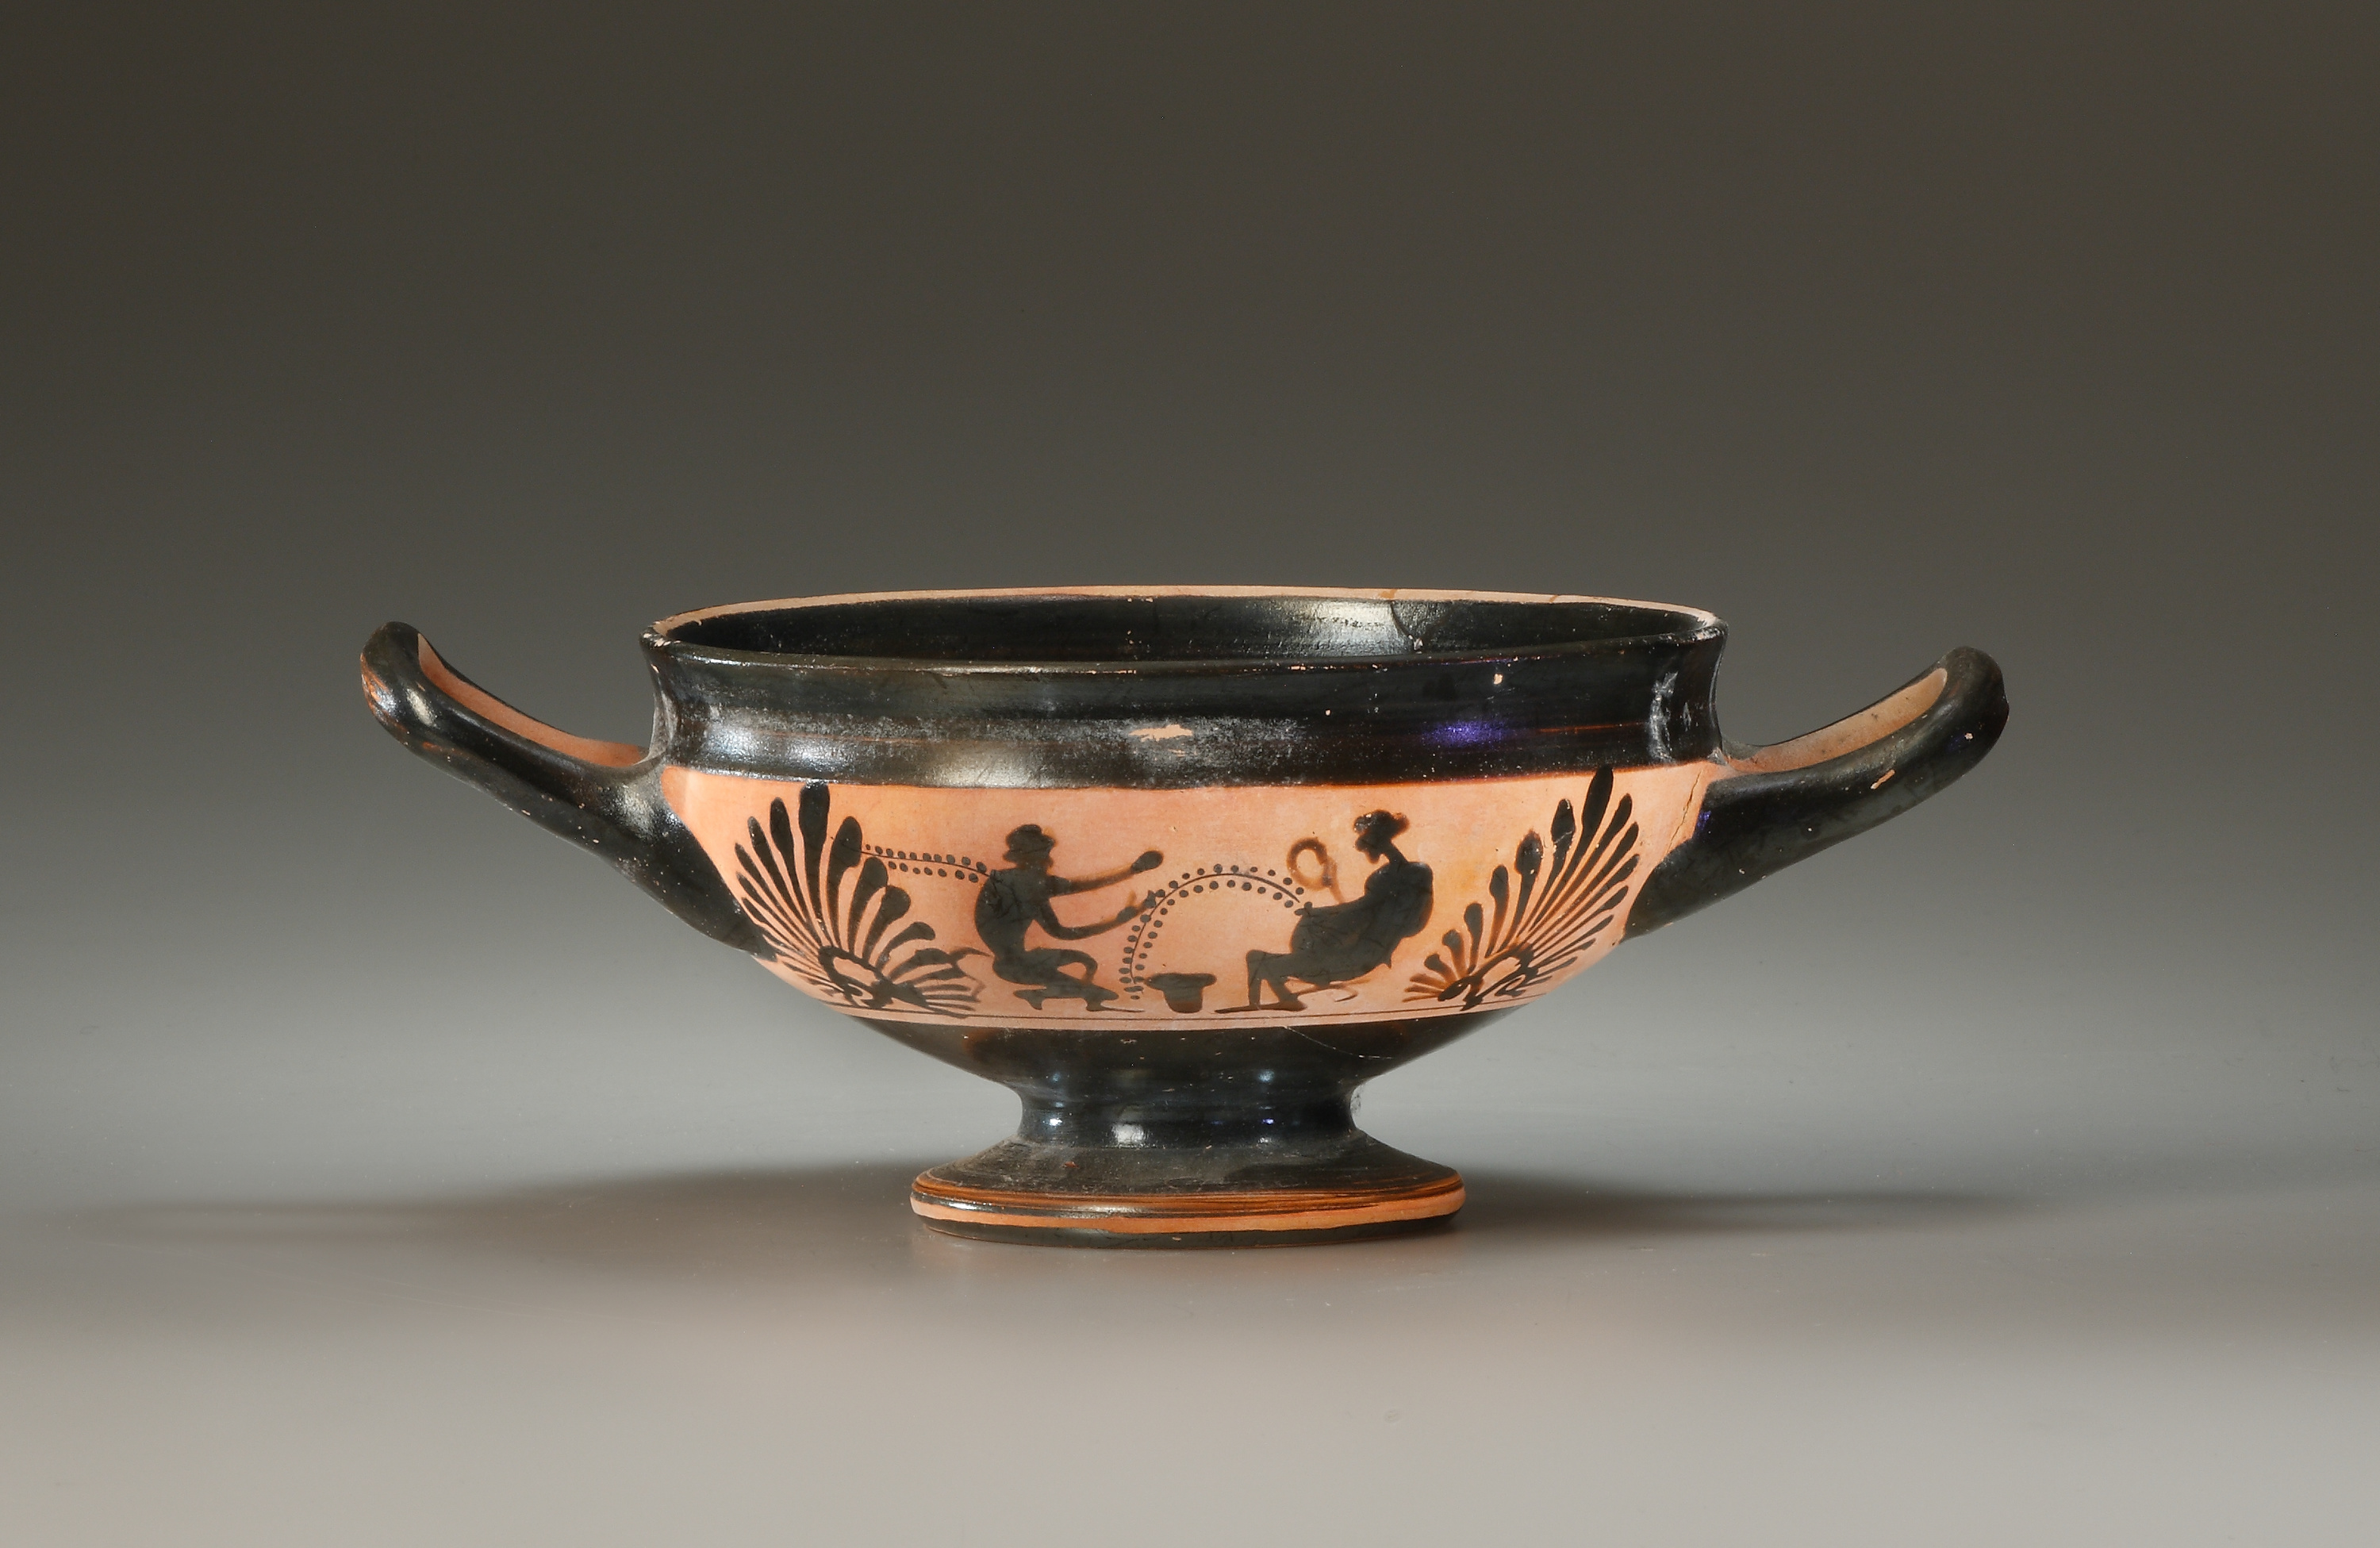 Lot 16 - A Boeotian Black-Figure Cup with Dionysian Figures